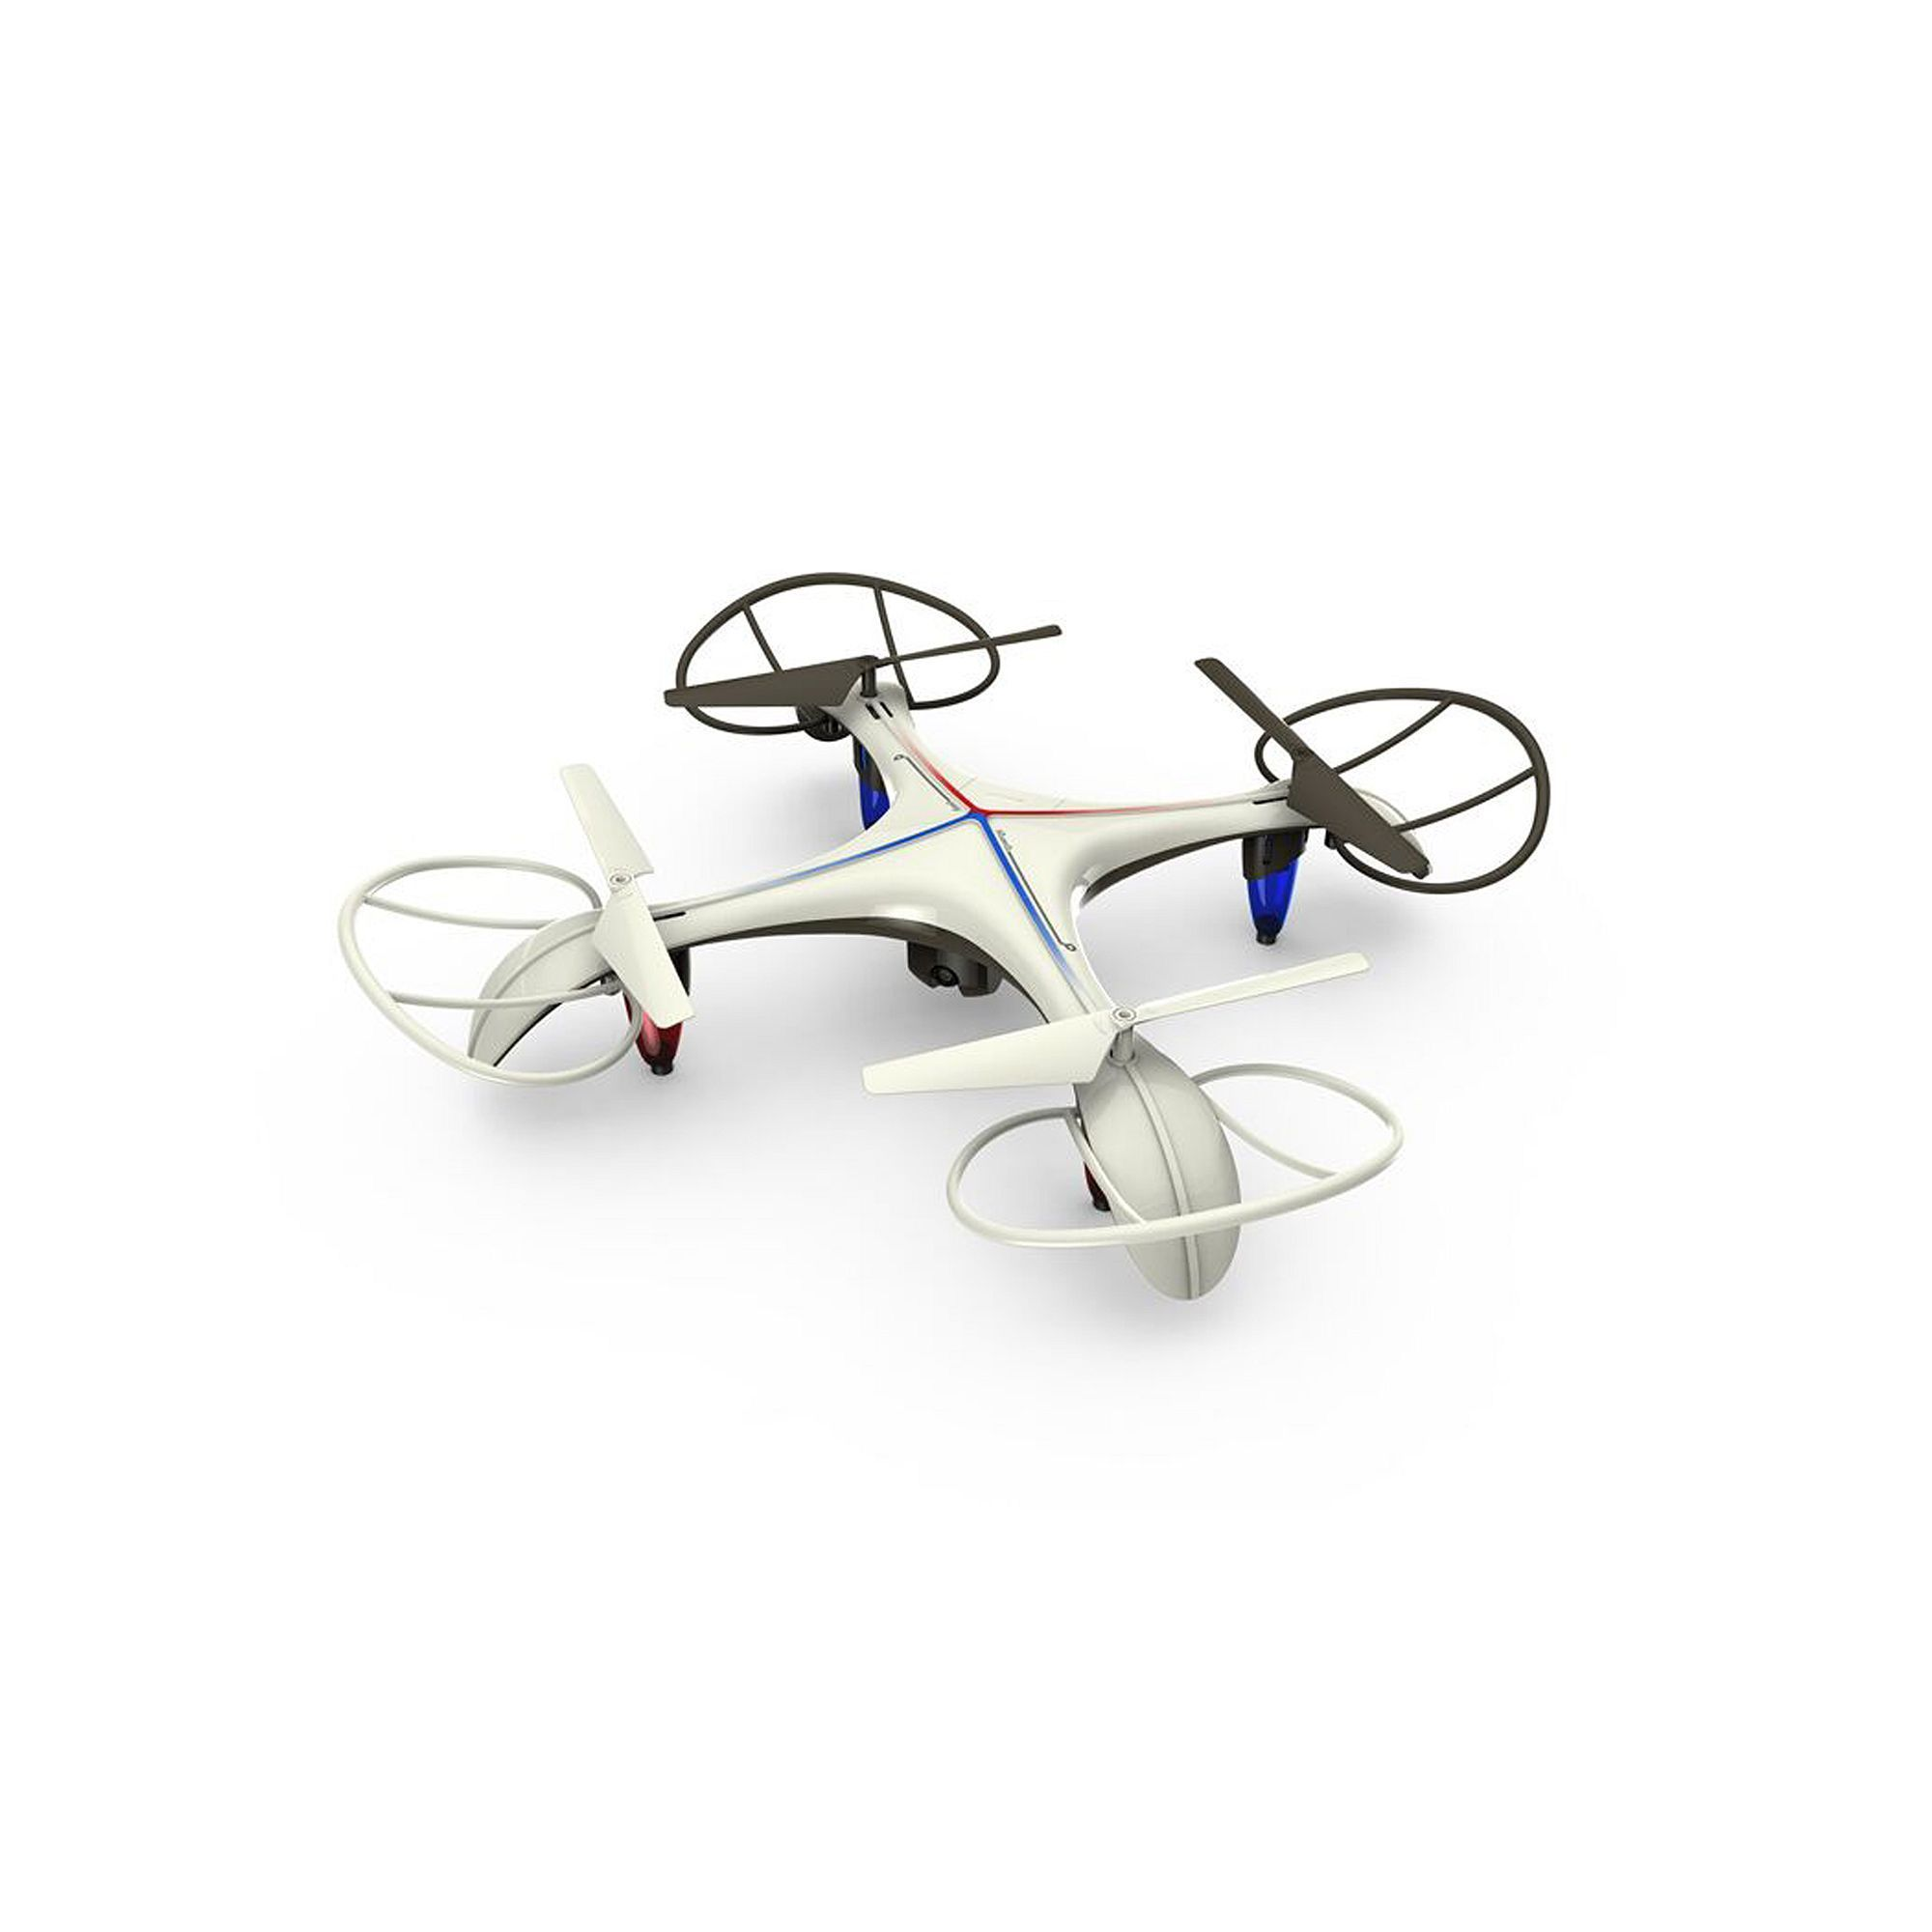 Silverlit Xcelsior Quadcopter Drone With Camera White Products